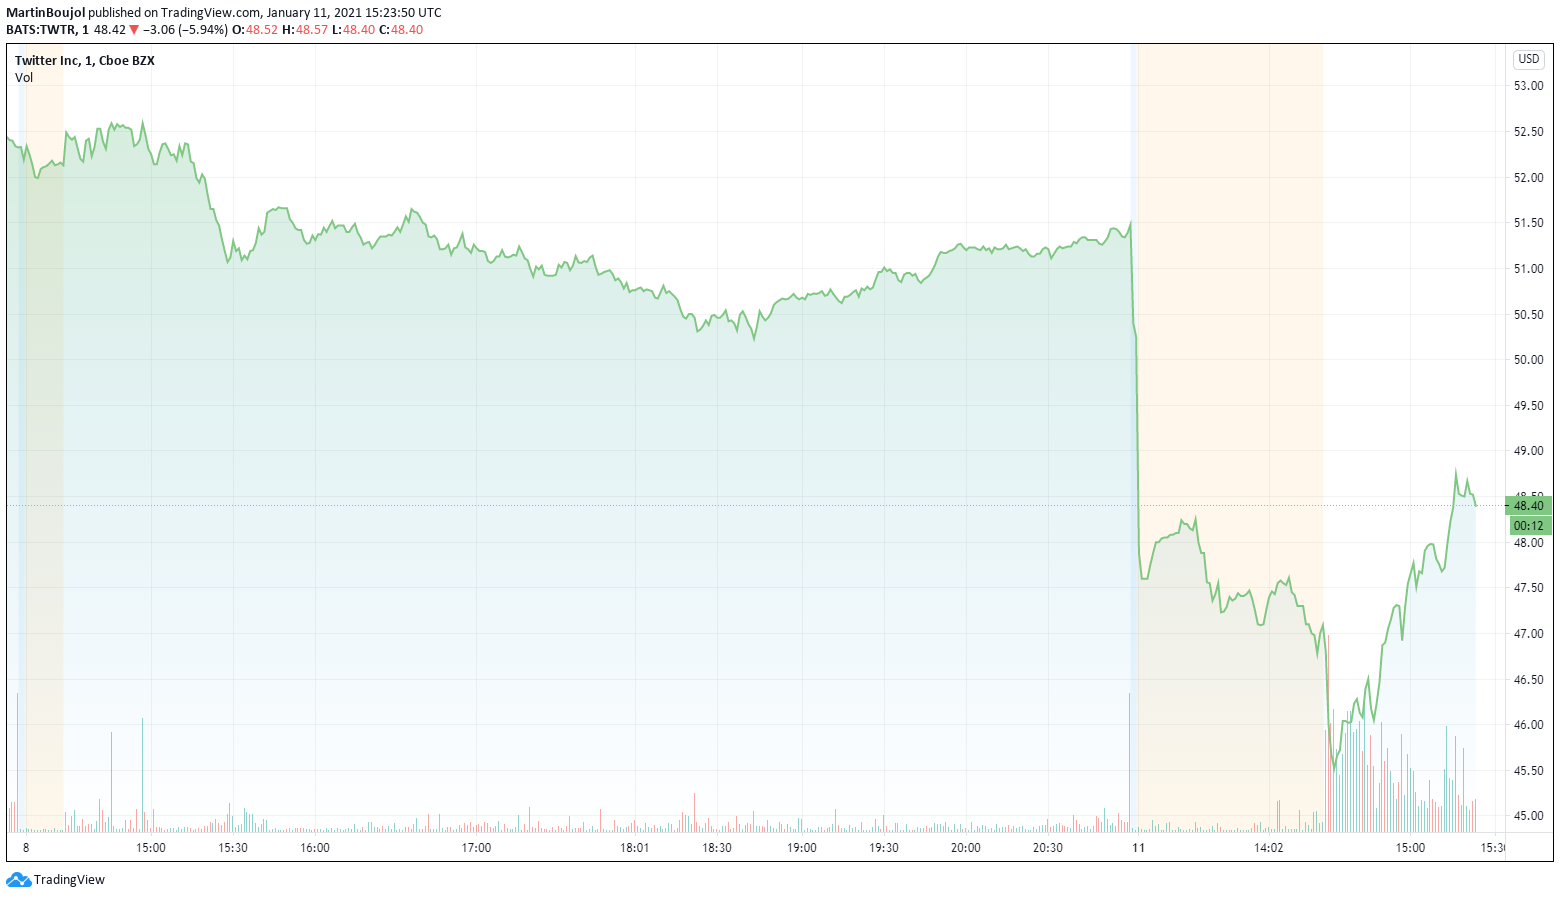 Twitter stock plunges